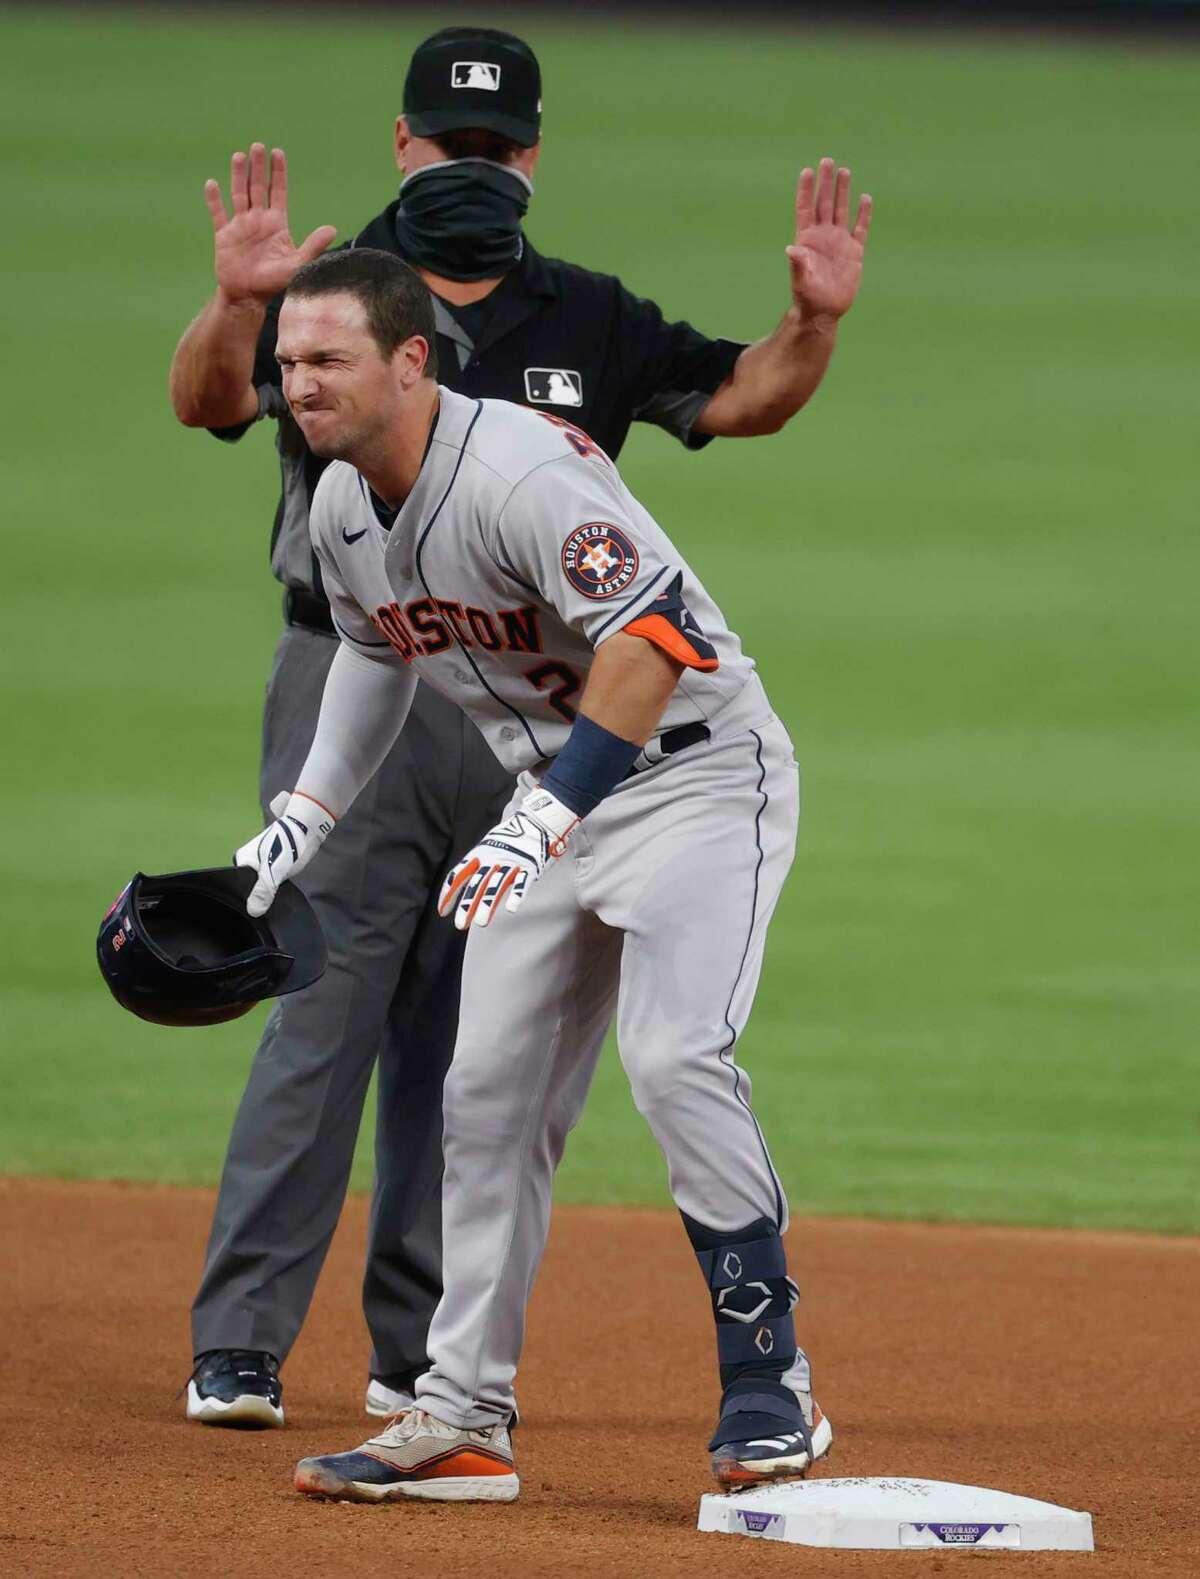 Houston Astros' Alex Bregman grimaces as he reaches second base after hitting a double in the fourth inning of a baseball game Wednesday, Aug. 19, 2020, in Denver. Bregman was removbed from the game before play resumed. (AP Photo/David Zalubowski)